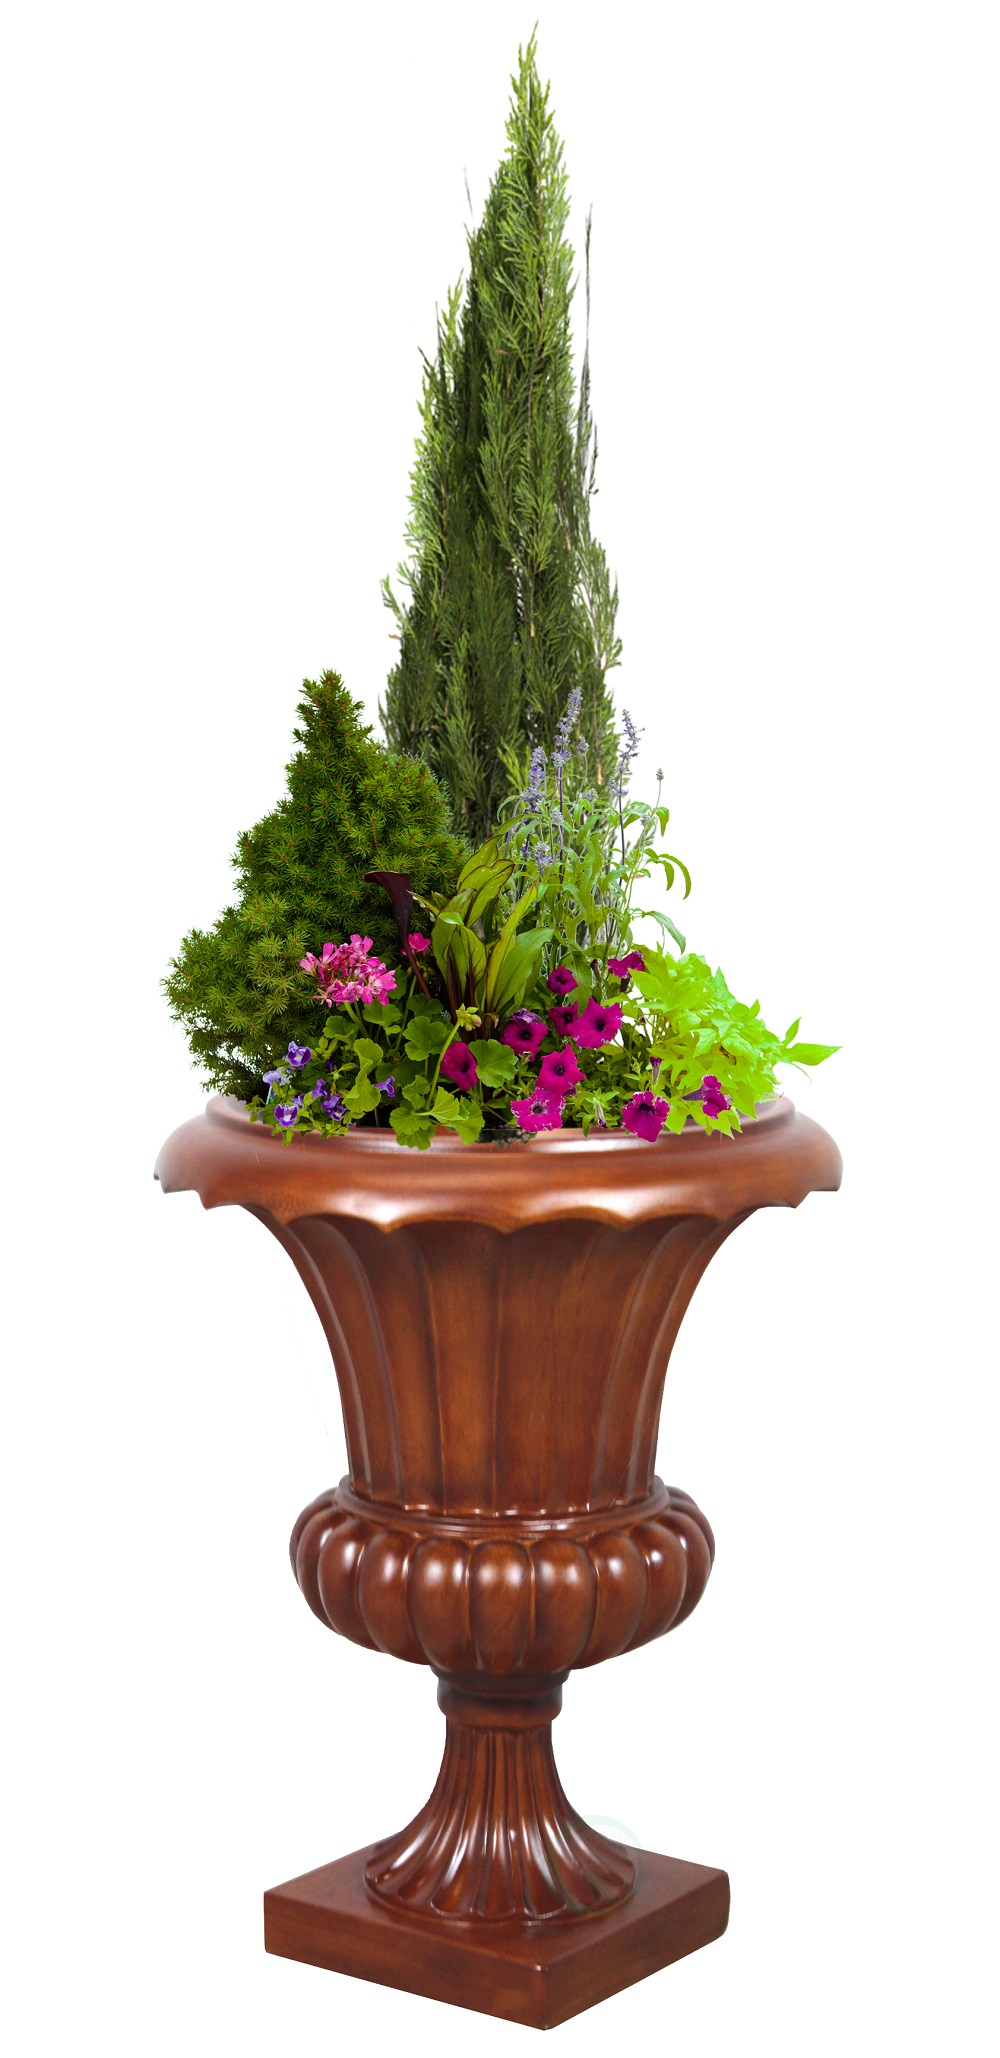 Corinthian Tuscany Urn Planter, Wood Color Finish, Indoor Outdoor Planter Urn 23 High by Quickway Imports Inc